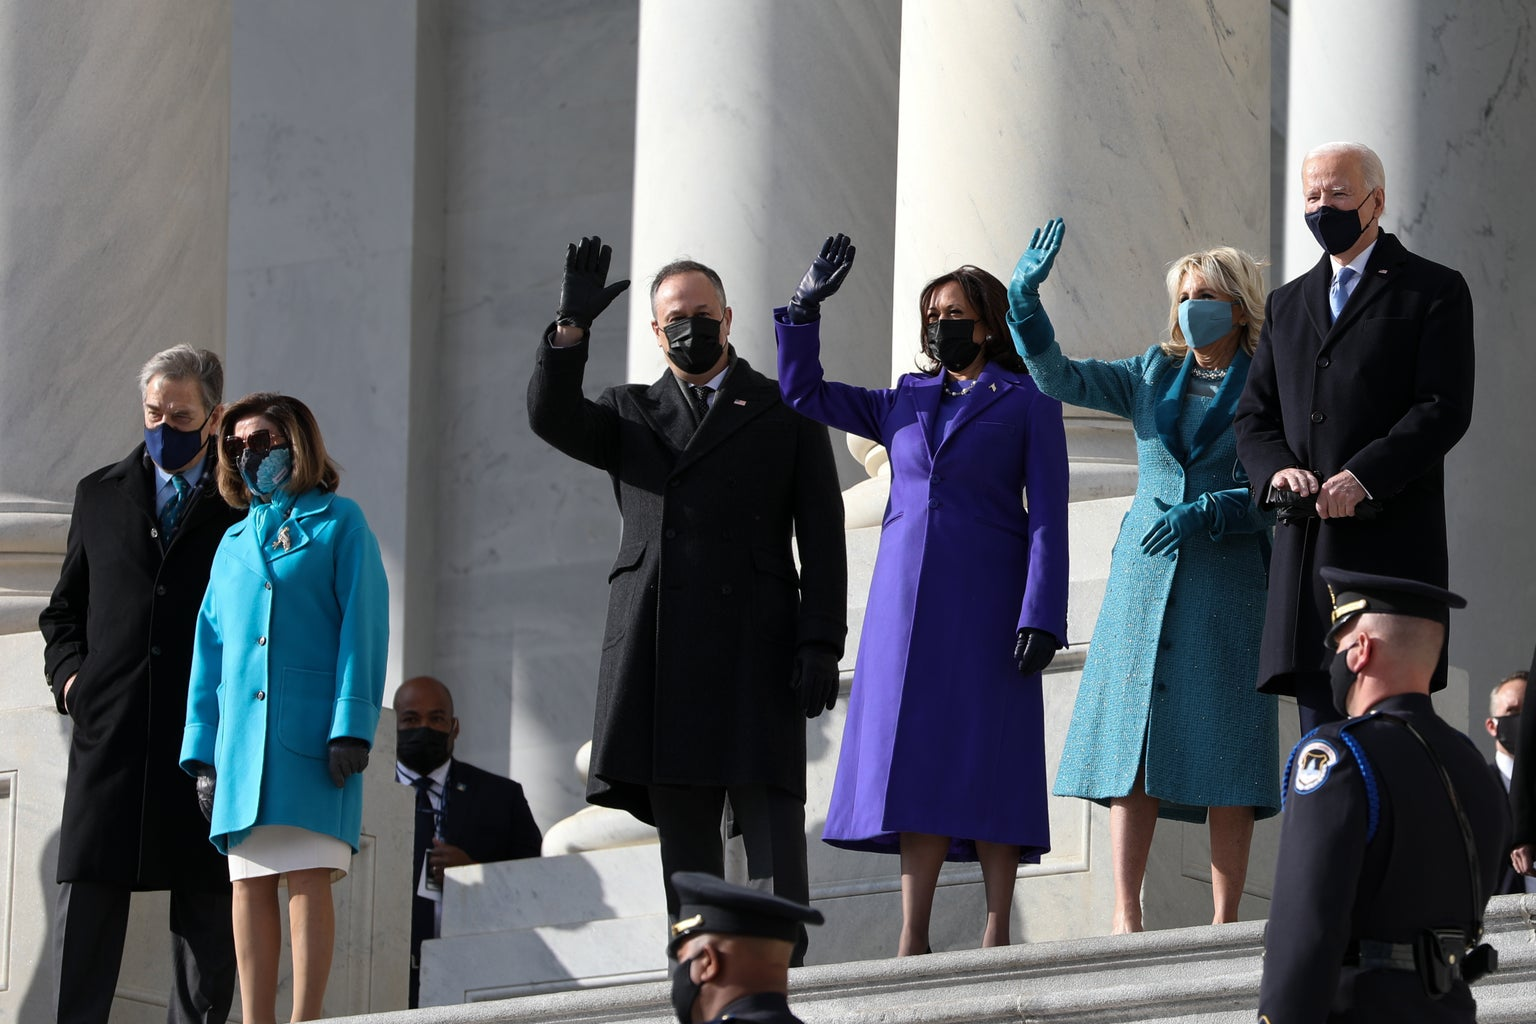 President Joe Biden, Vice President Kamala Harris, and their spouses during the 59th inauguration in D.C.